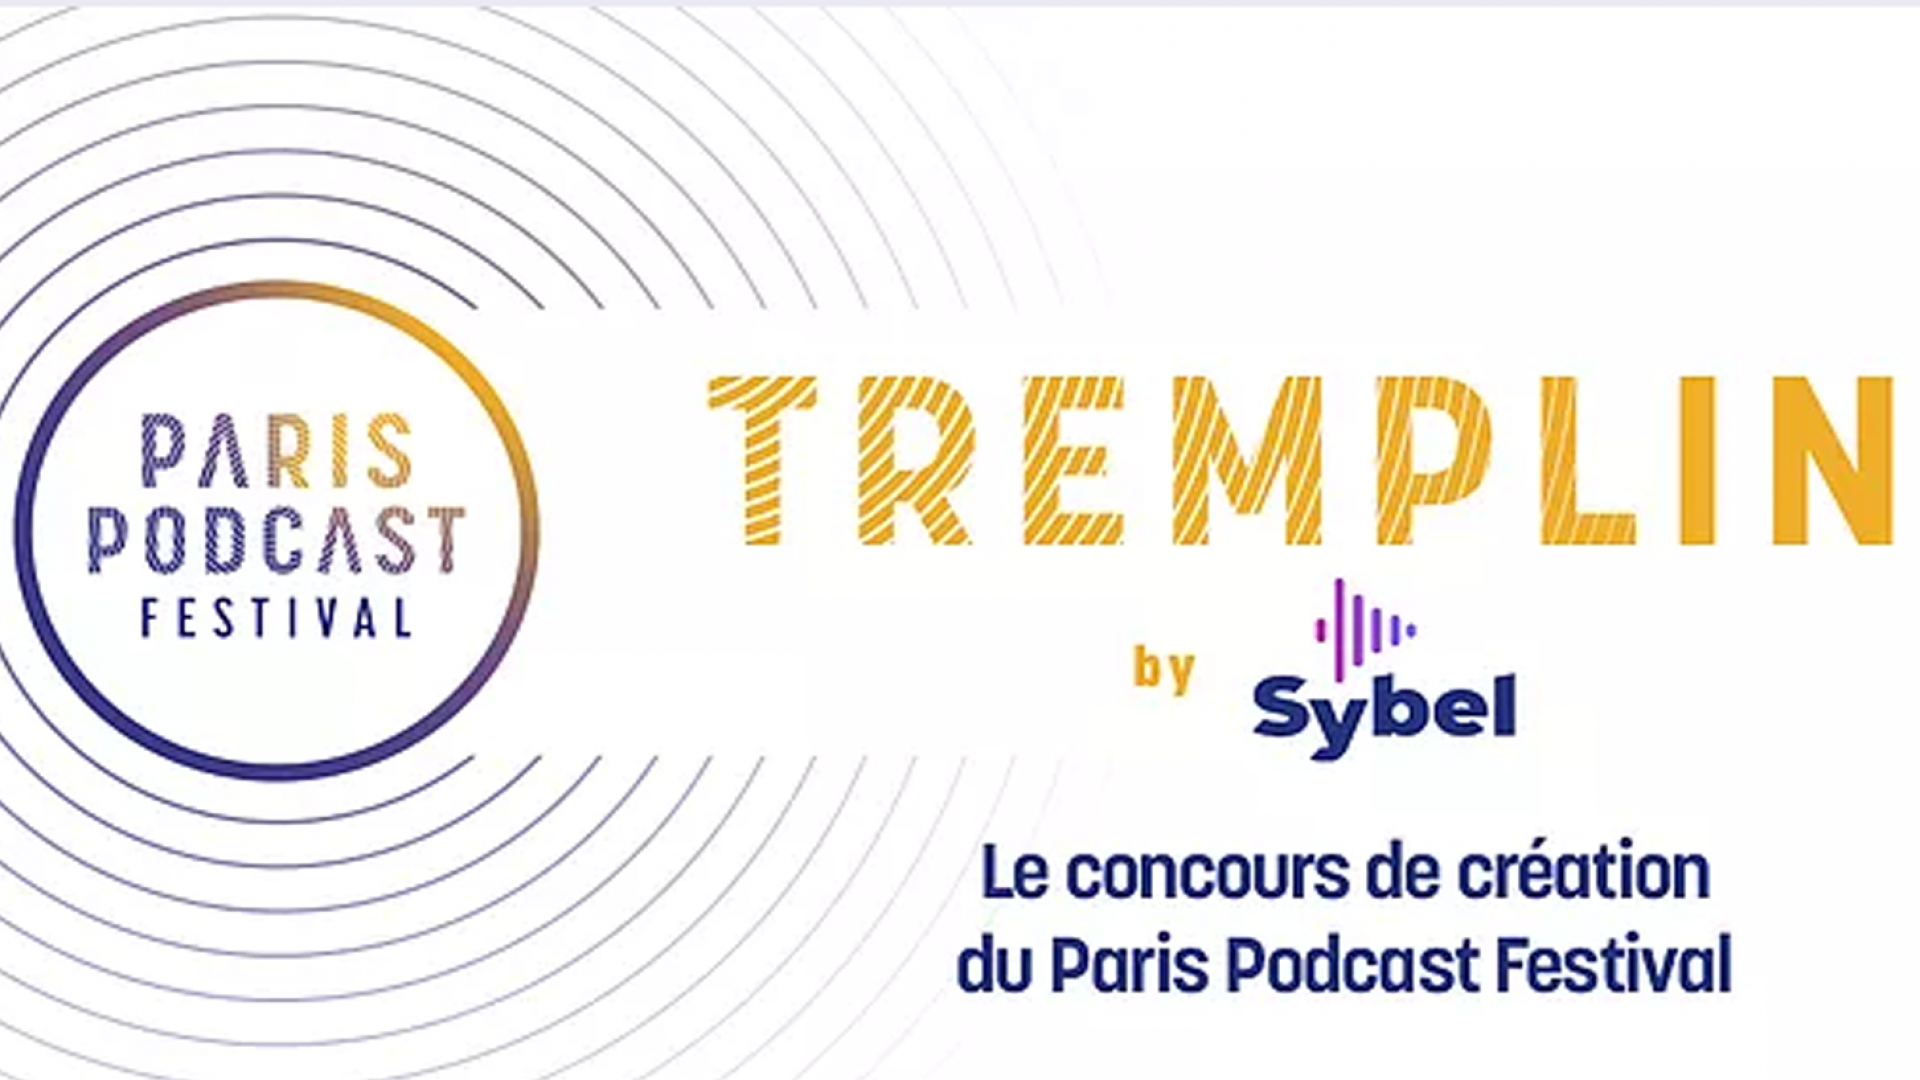 Paris Podcast Festival 2019 - Appel à podcasts